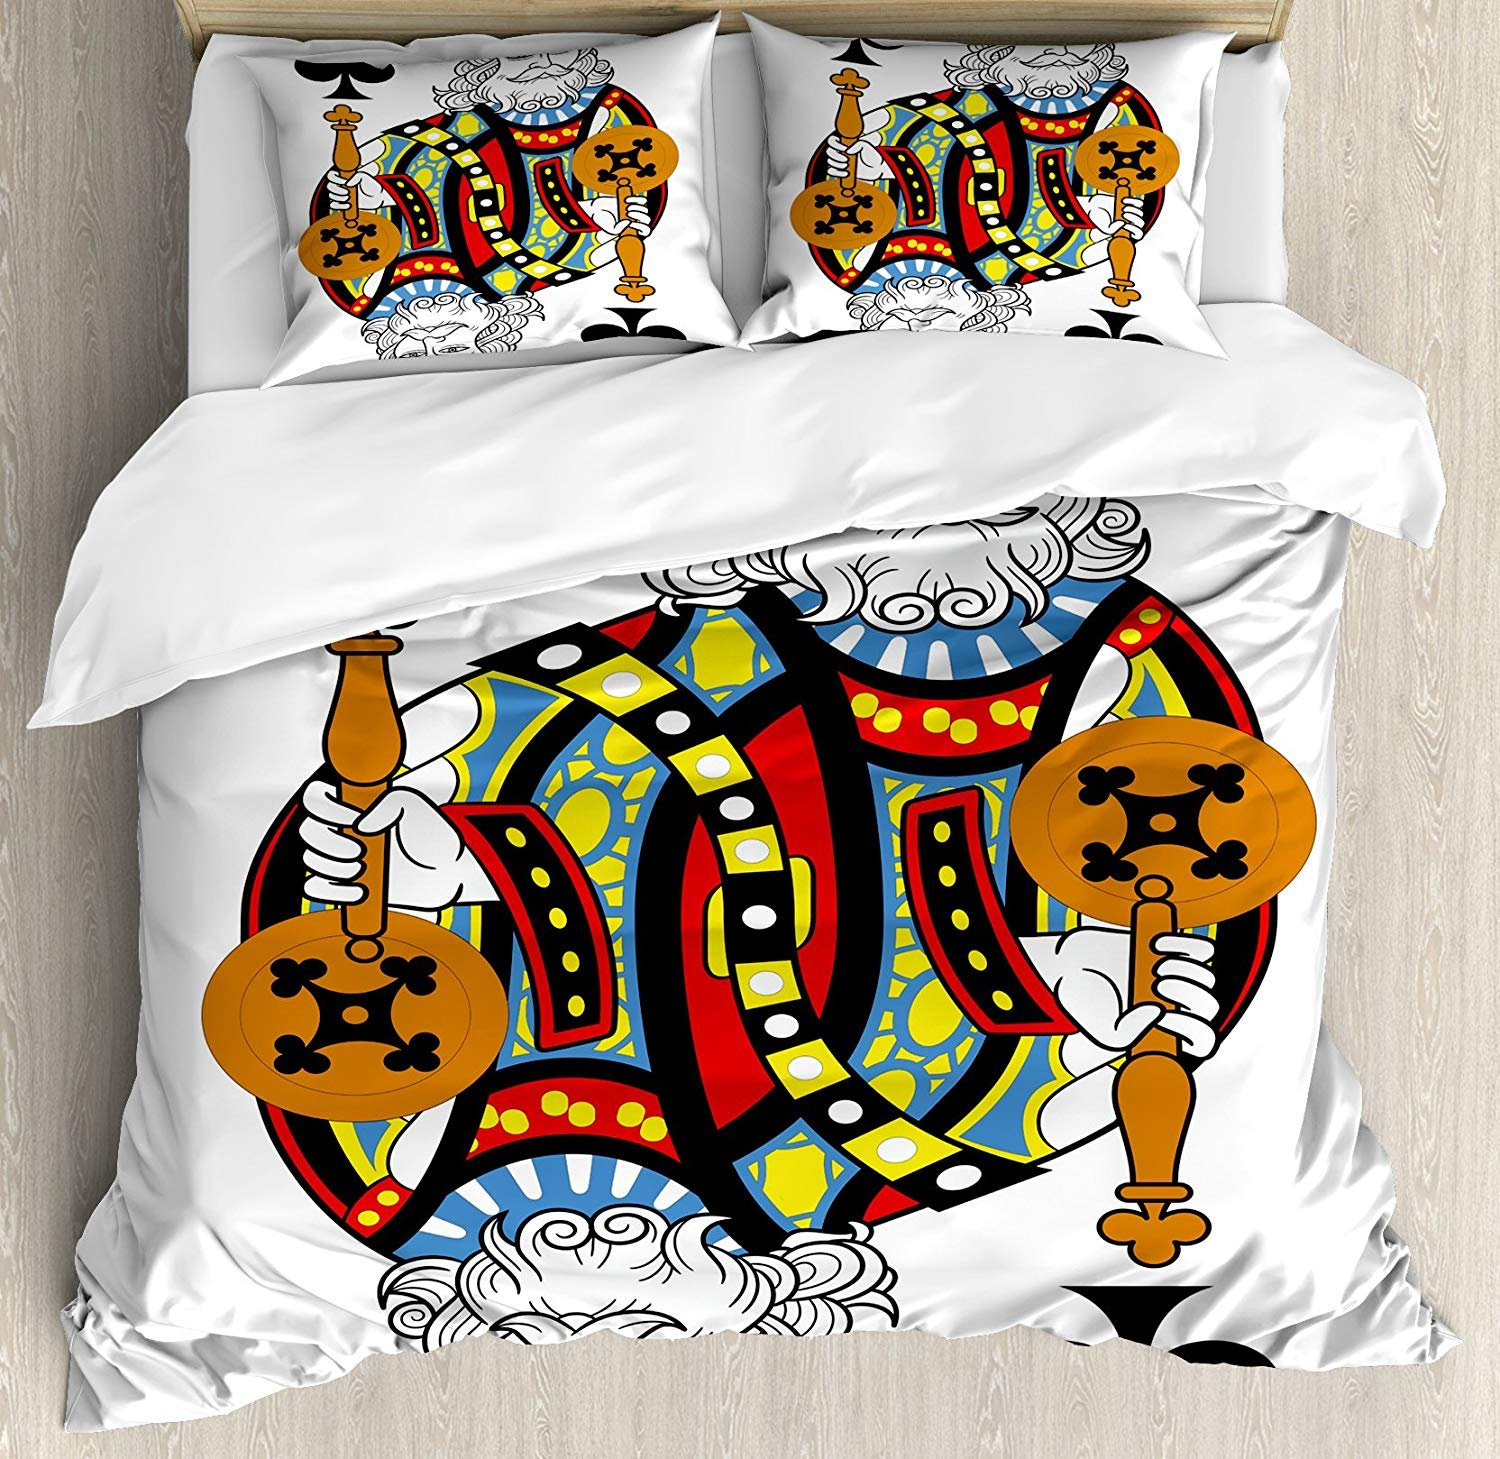 Twin Size King 3 PCS Duvet Cover Set, King of Clubs Playing Gambling Poker Card Game Leisure Theme Without Frame Artwork, Bedding Set Quilt Bedspread for Children/Teens/Adults/Kids, Multicolor